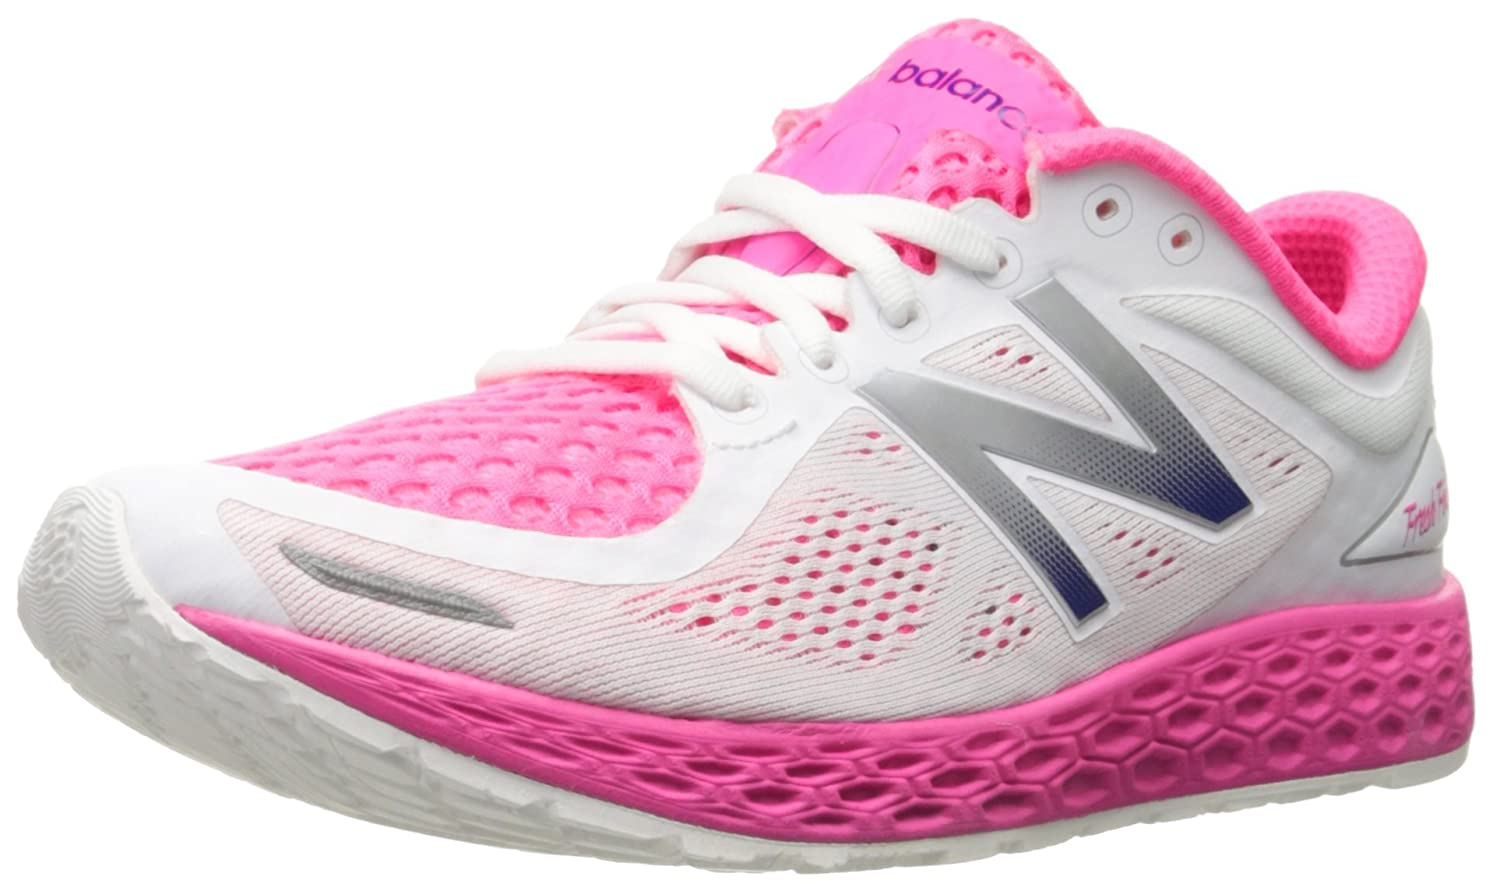 New Balance Women's ZanteV2 Breathe Running Shoe B016419180 10.5 B(M) US|White/Amp Pink